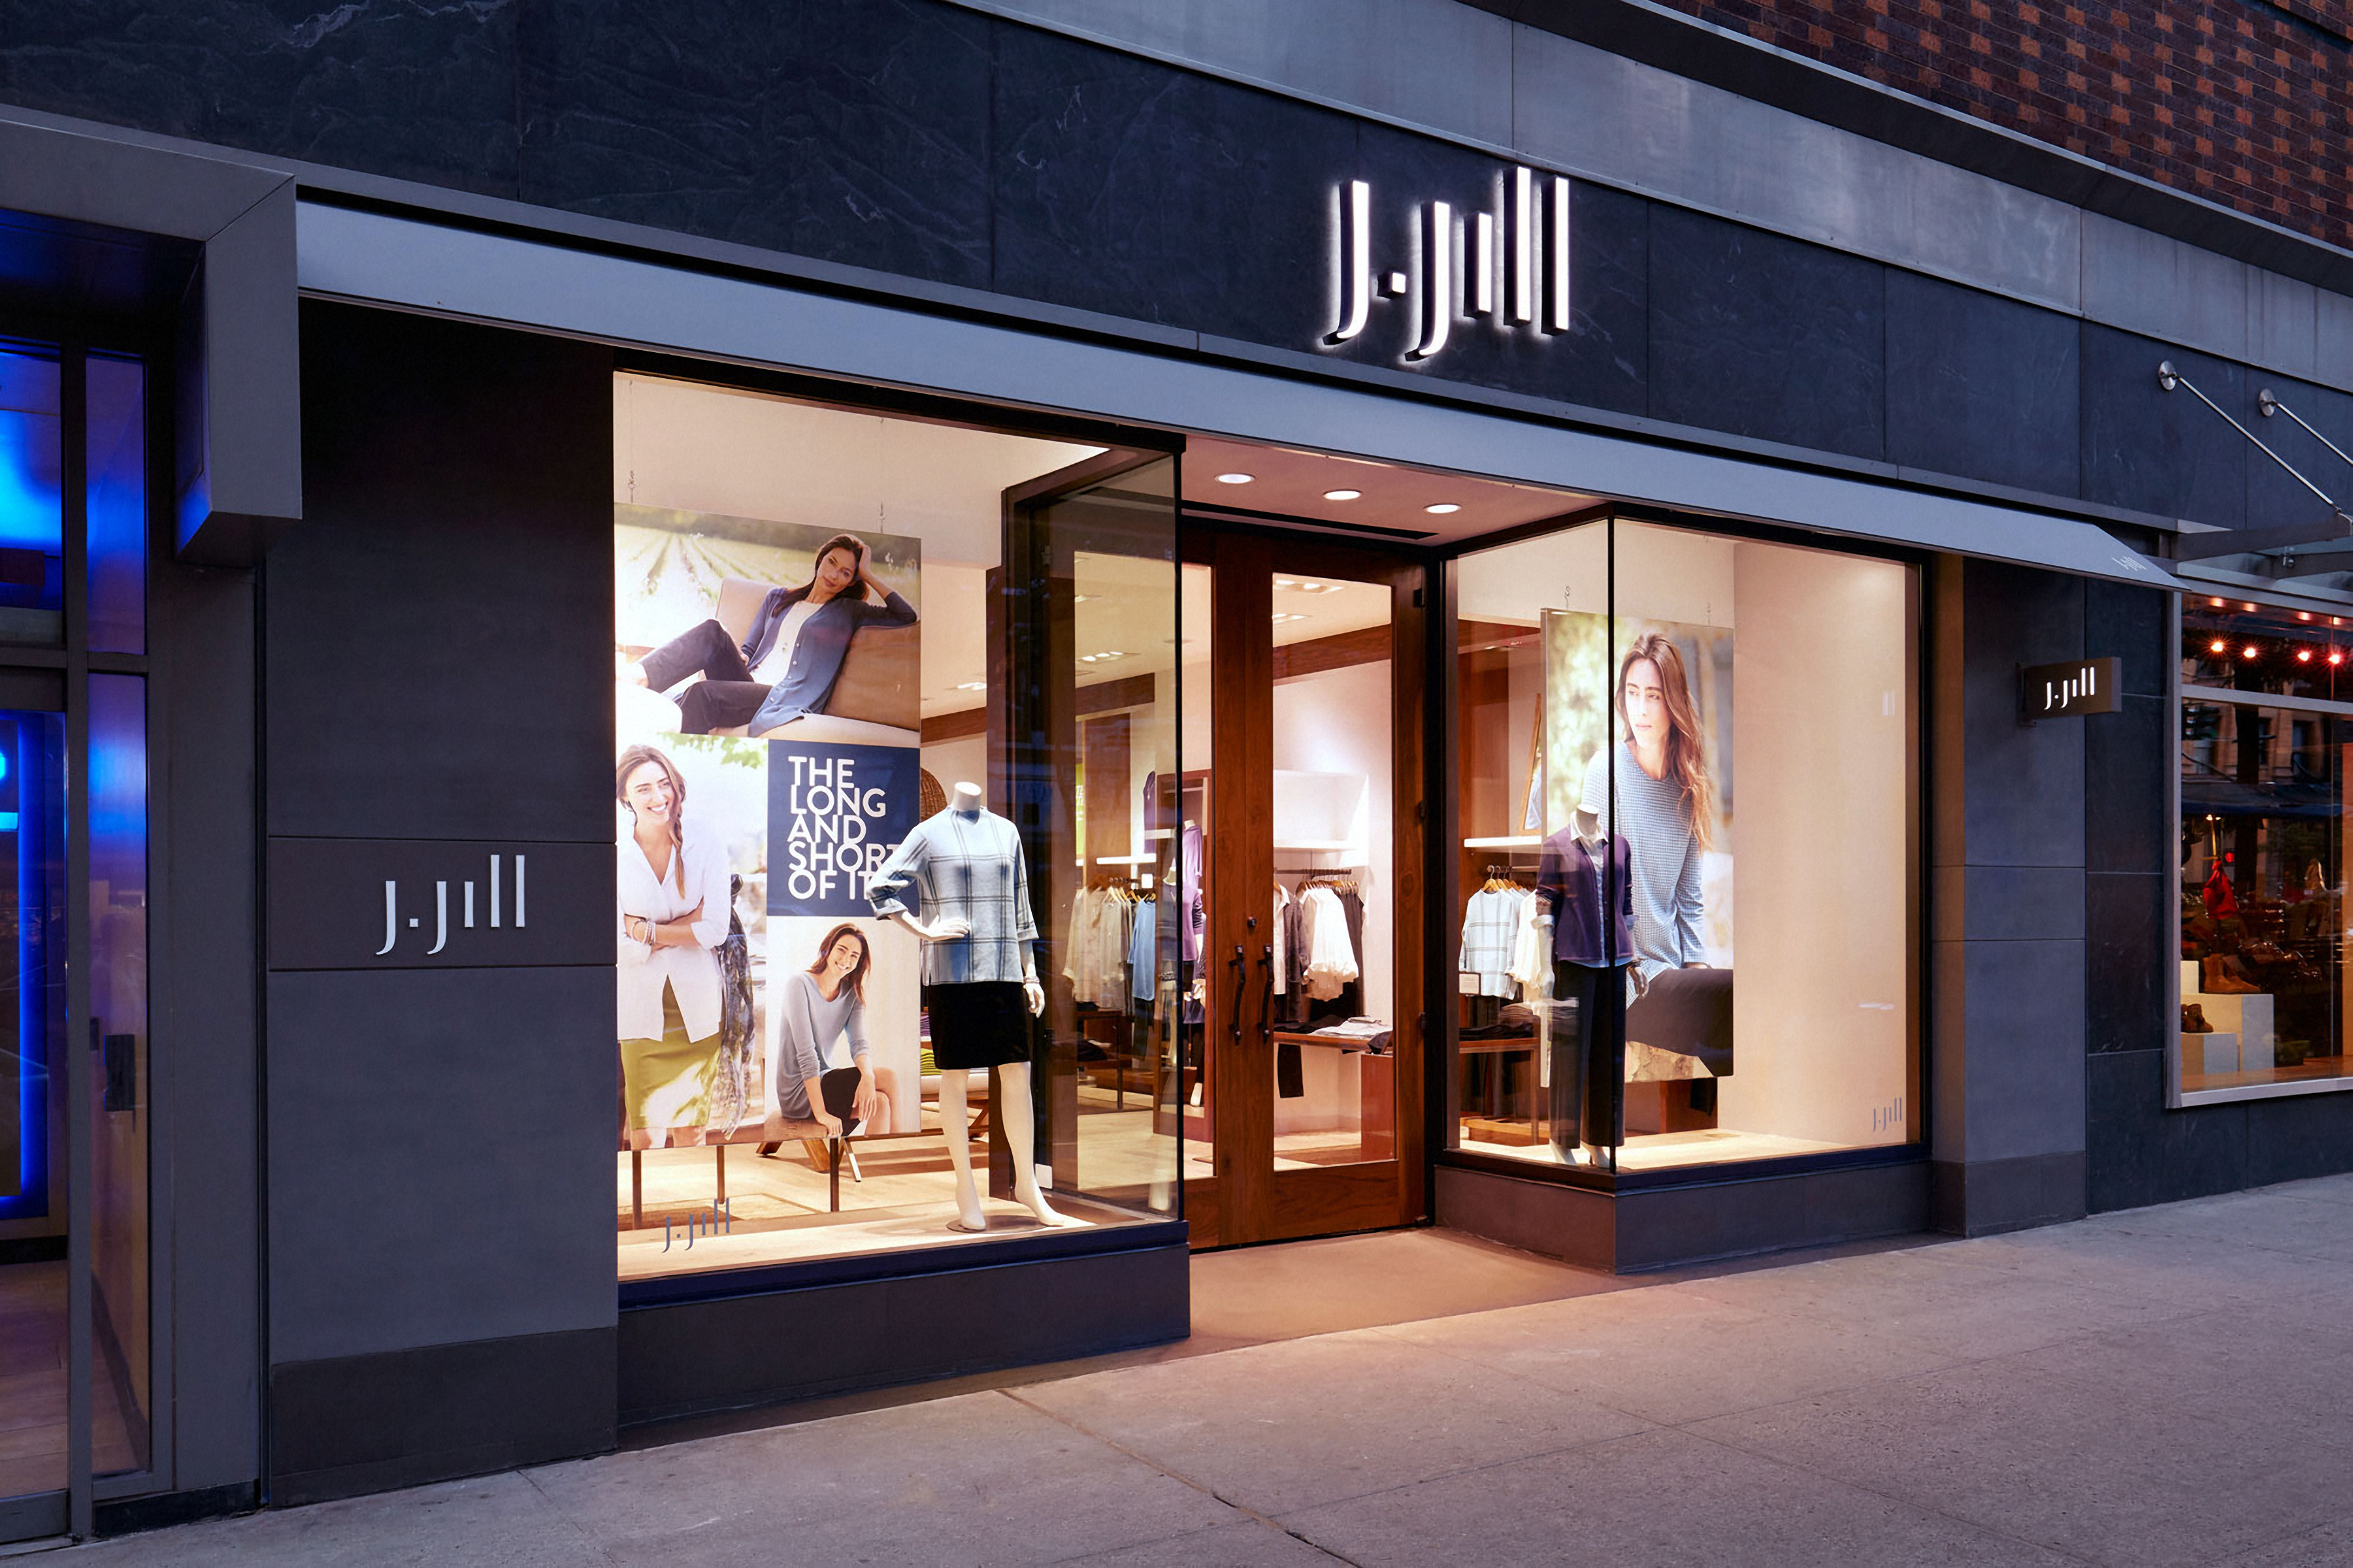 Women's apparel retailer J. Jill is officially debuting shares on the New York Stock Exchange on Thursday.